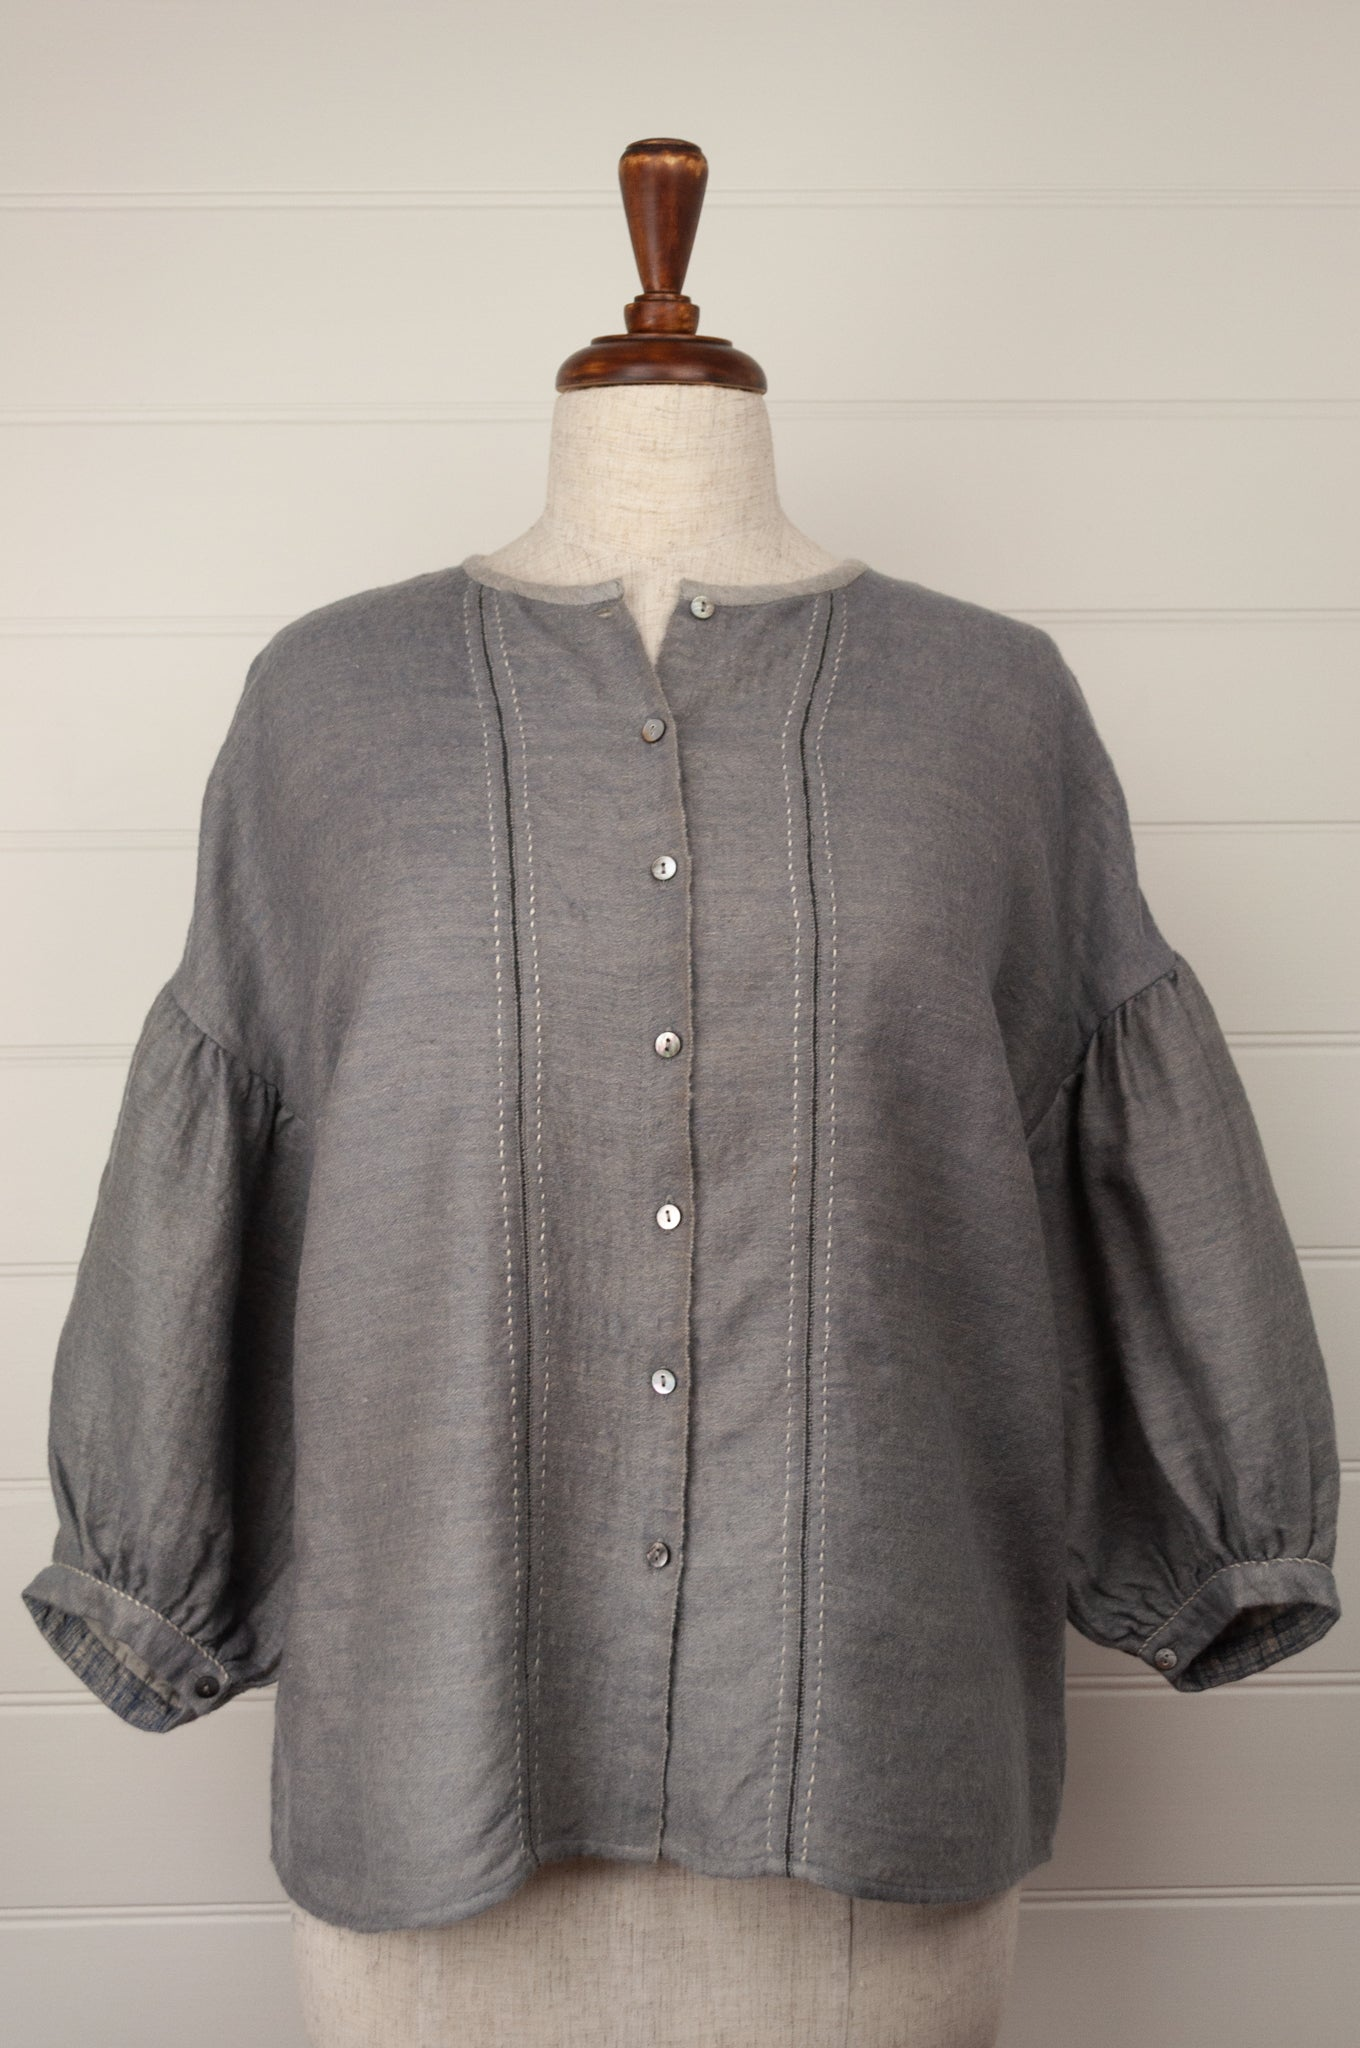 Dve Ishi button up top - grey wool